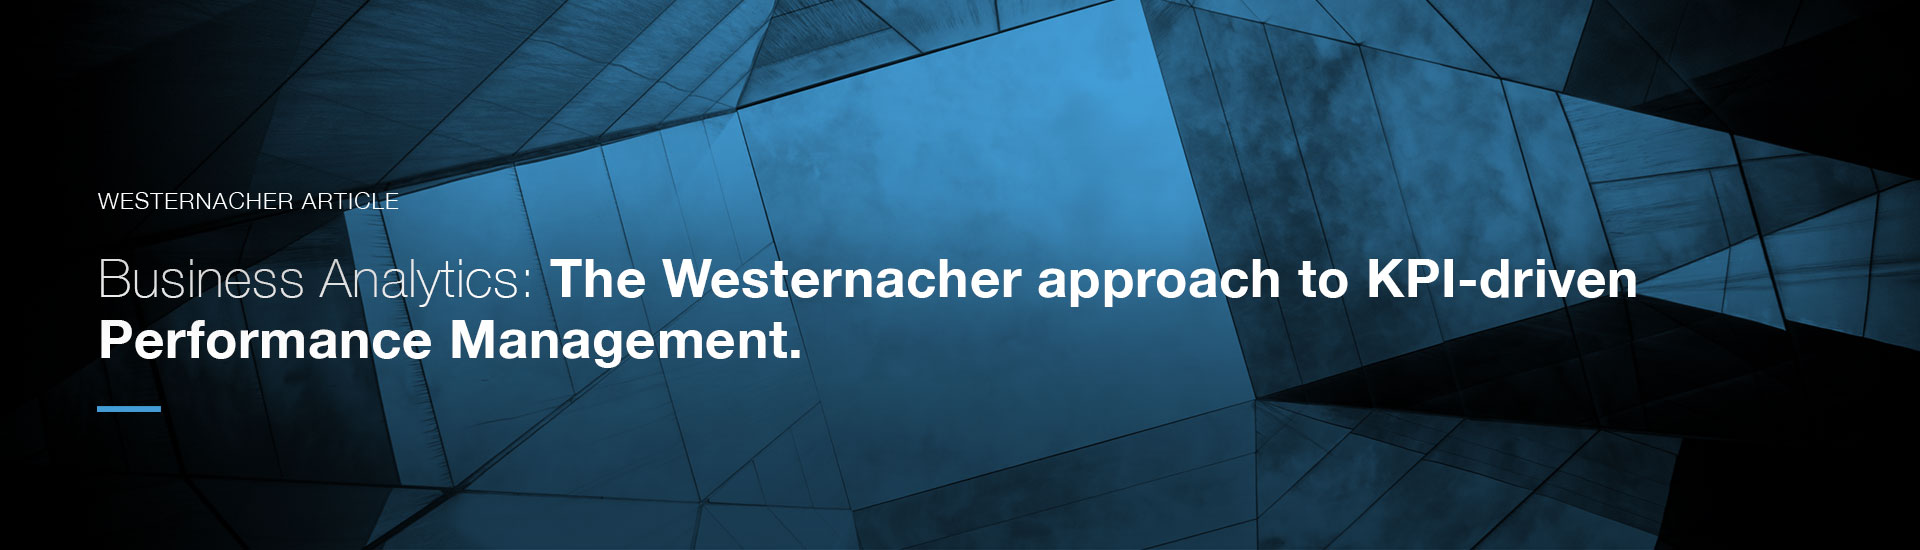 The Westernacher approach to KPI-driven Performance Management | westernacher-consulting.com